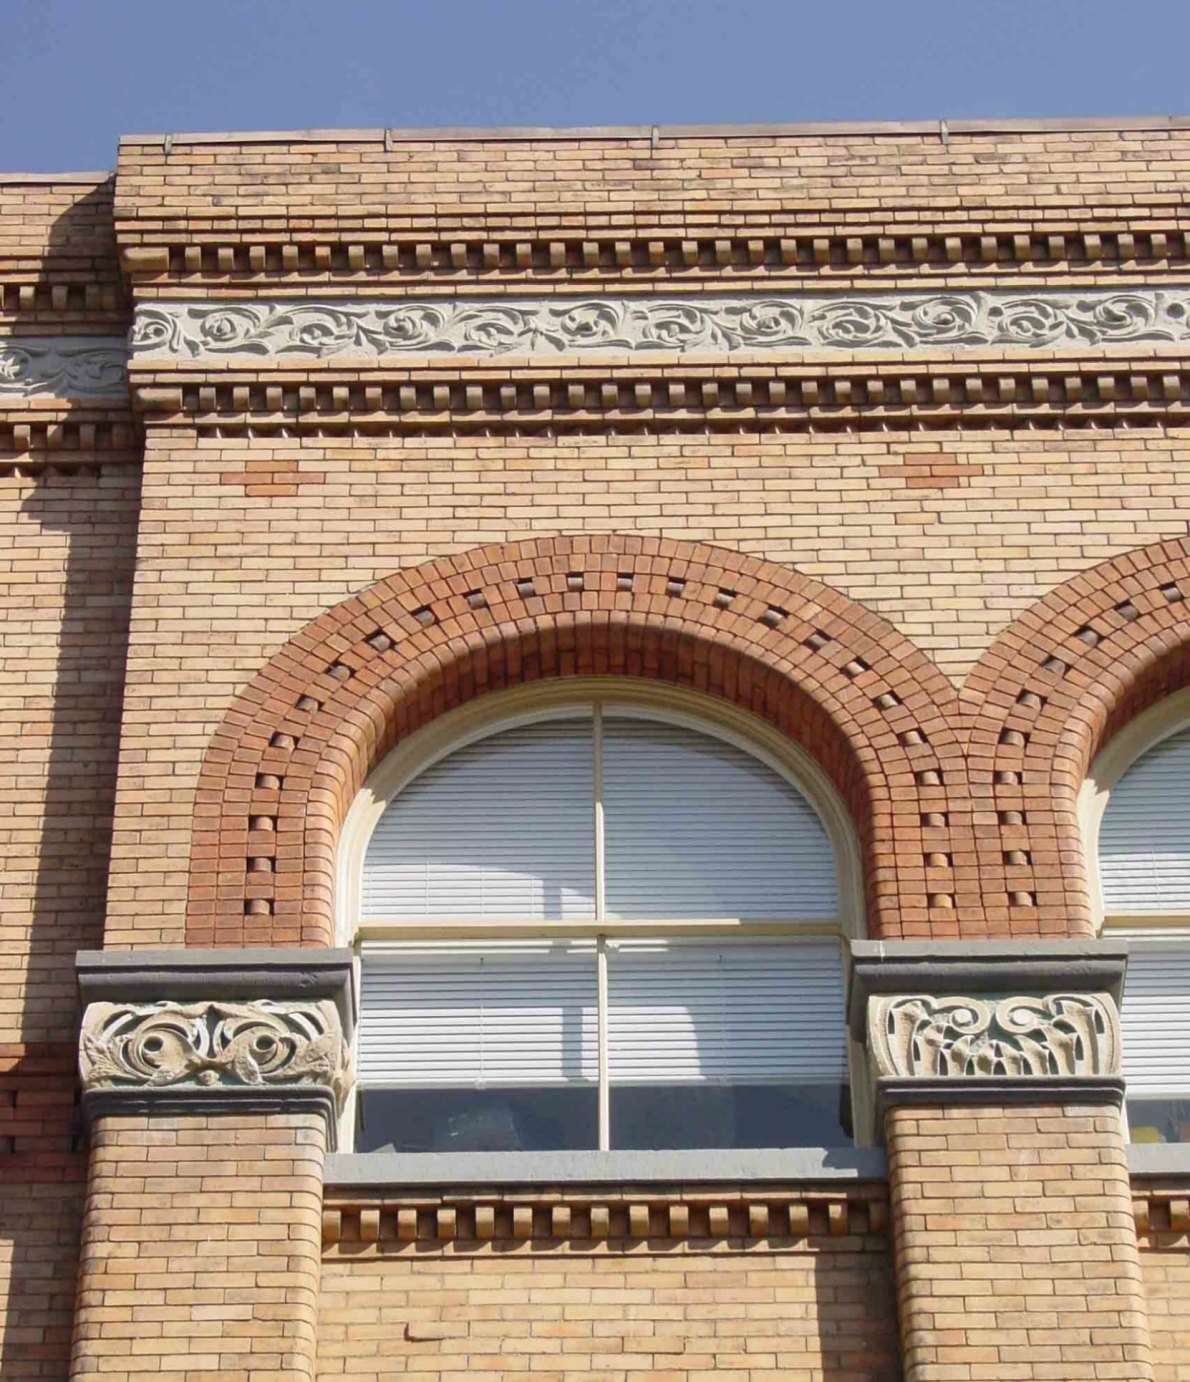 Vernon Building, decorative brickwork and detailing